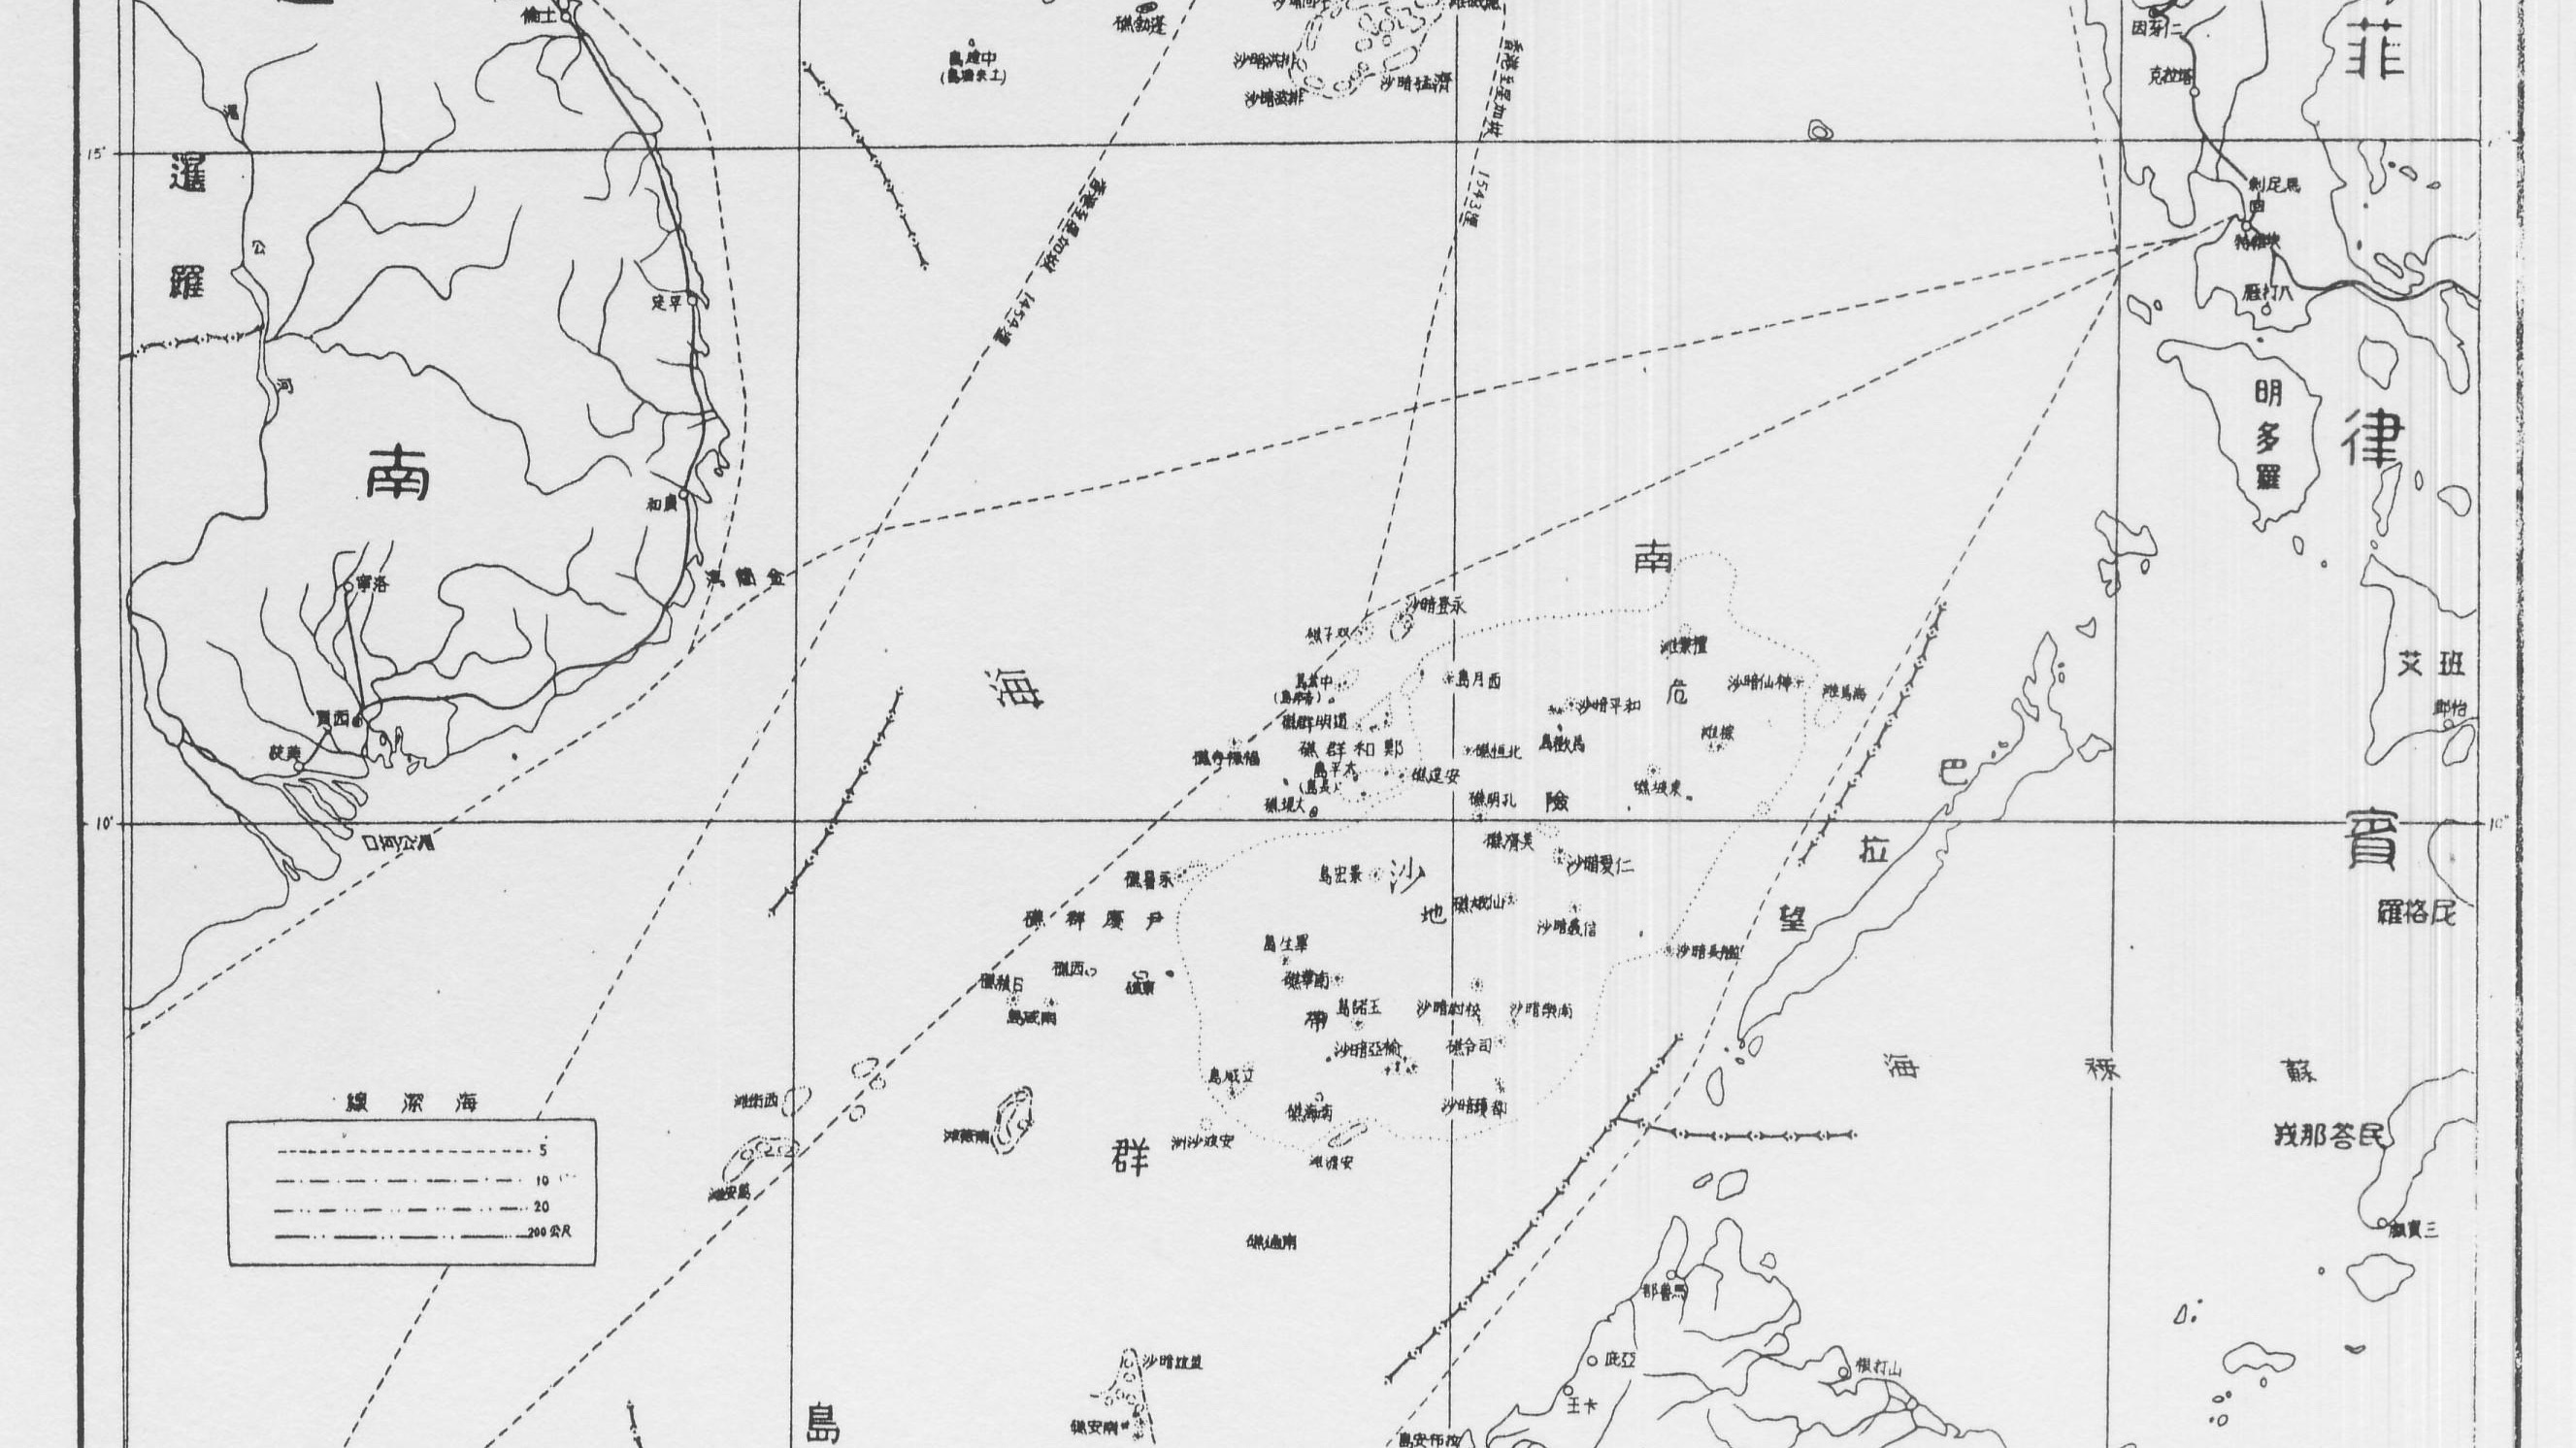 South china sea the line on a 70 year old map that threatens to set south china sea the line on a 70 year old map that threatens to set off a war in east asia quartz gumiabroncs Choice Image